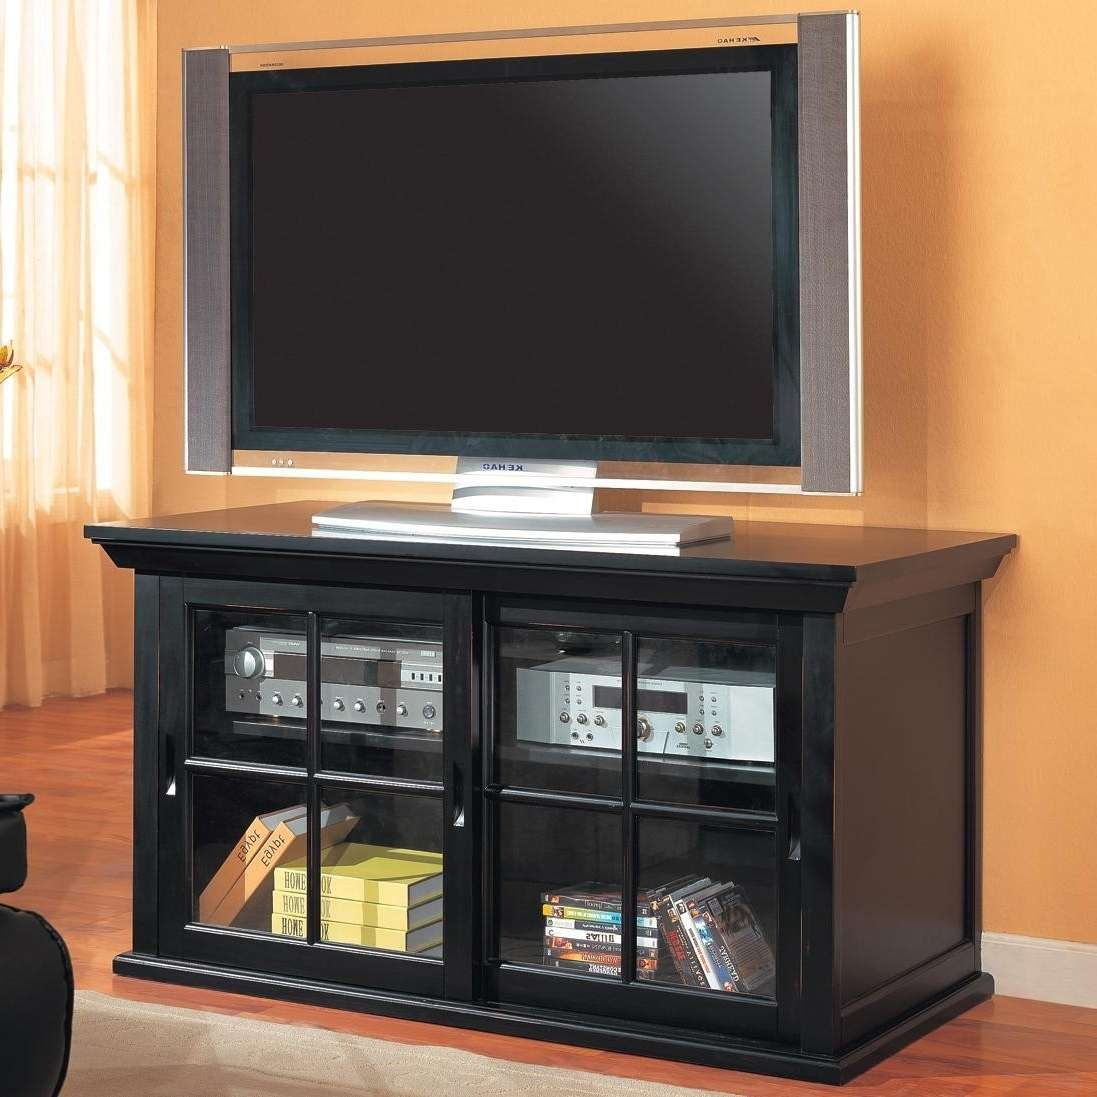 Small Tv Cabinet With Glass Doors • Cabinet Doors | Best Home Throughout Glass Tv Cabinets With Doors (View 12 of 20)